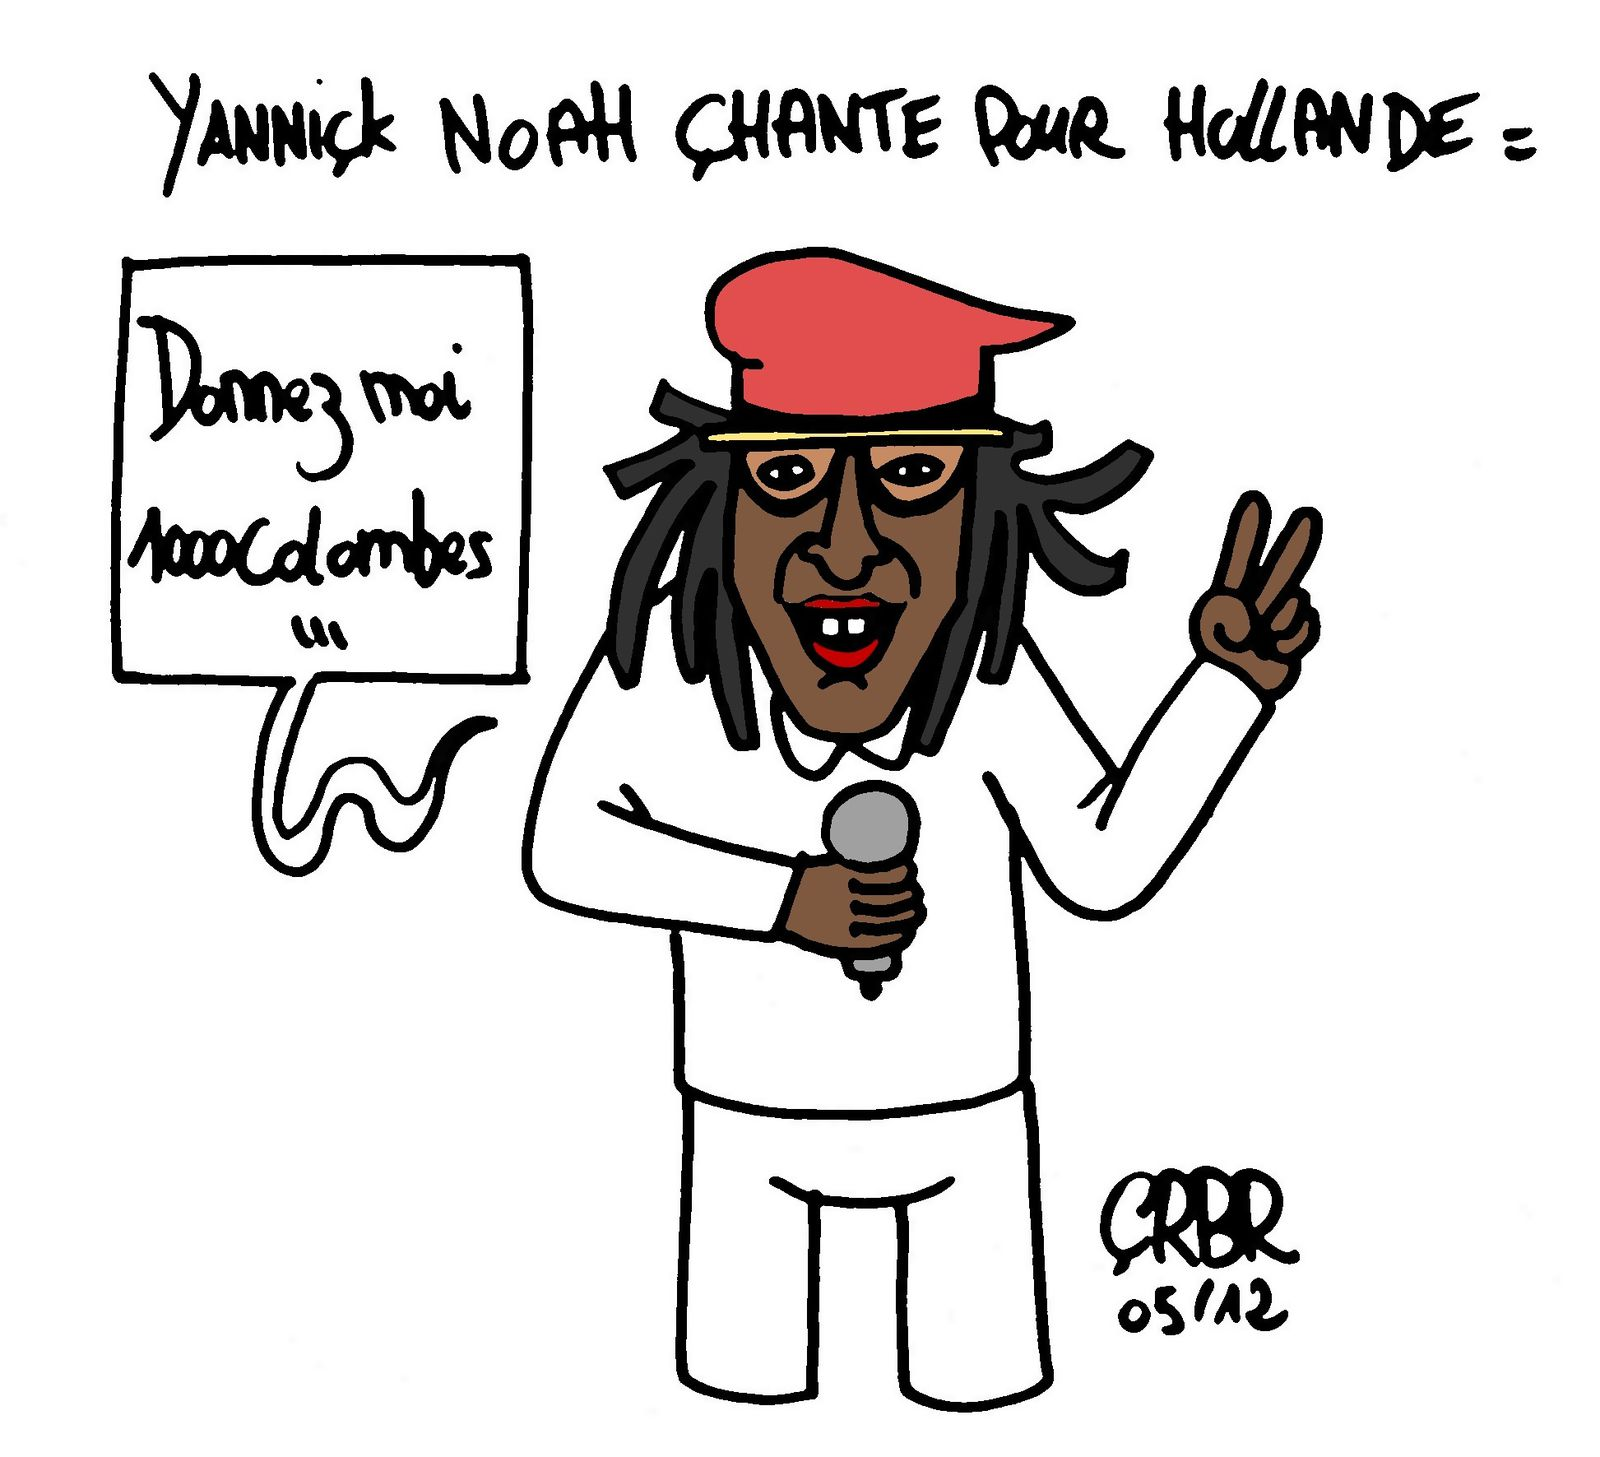 yannick noah chante pour hollande les dessins d 39 actualit de cerb re. Black Bedroom Furniture Sets. Home Design Ideas